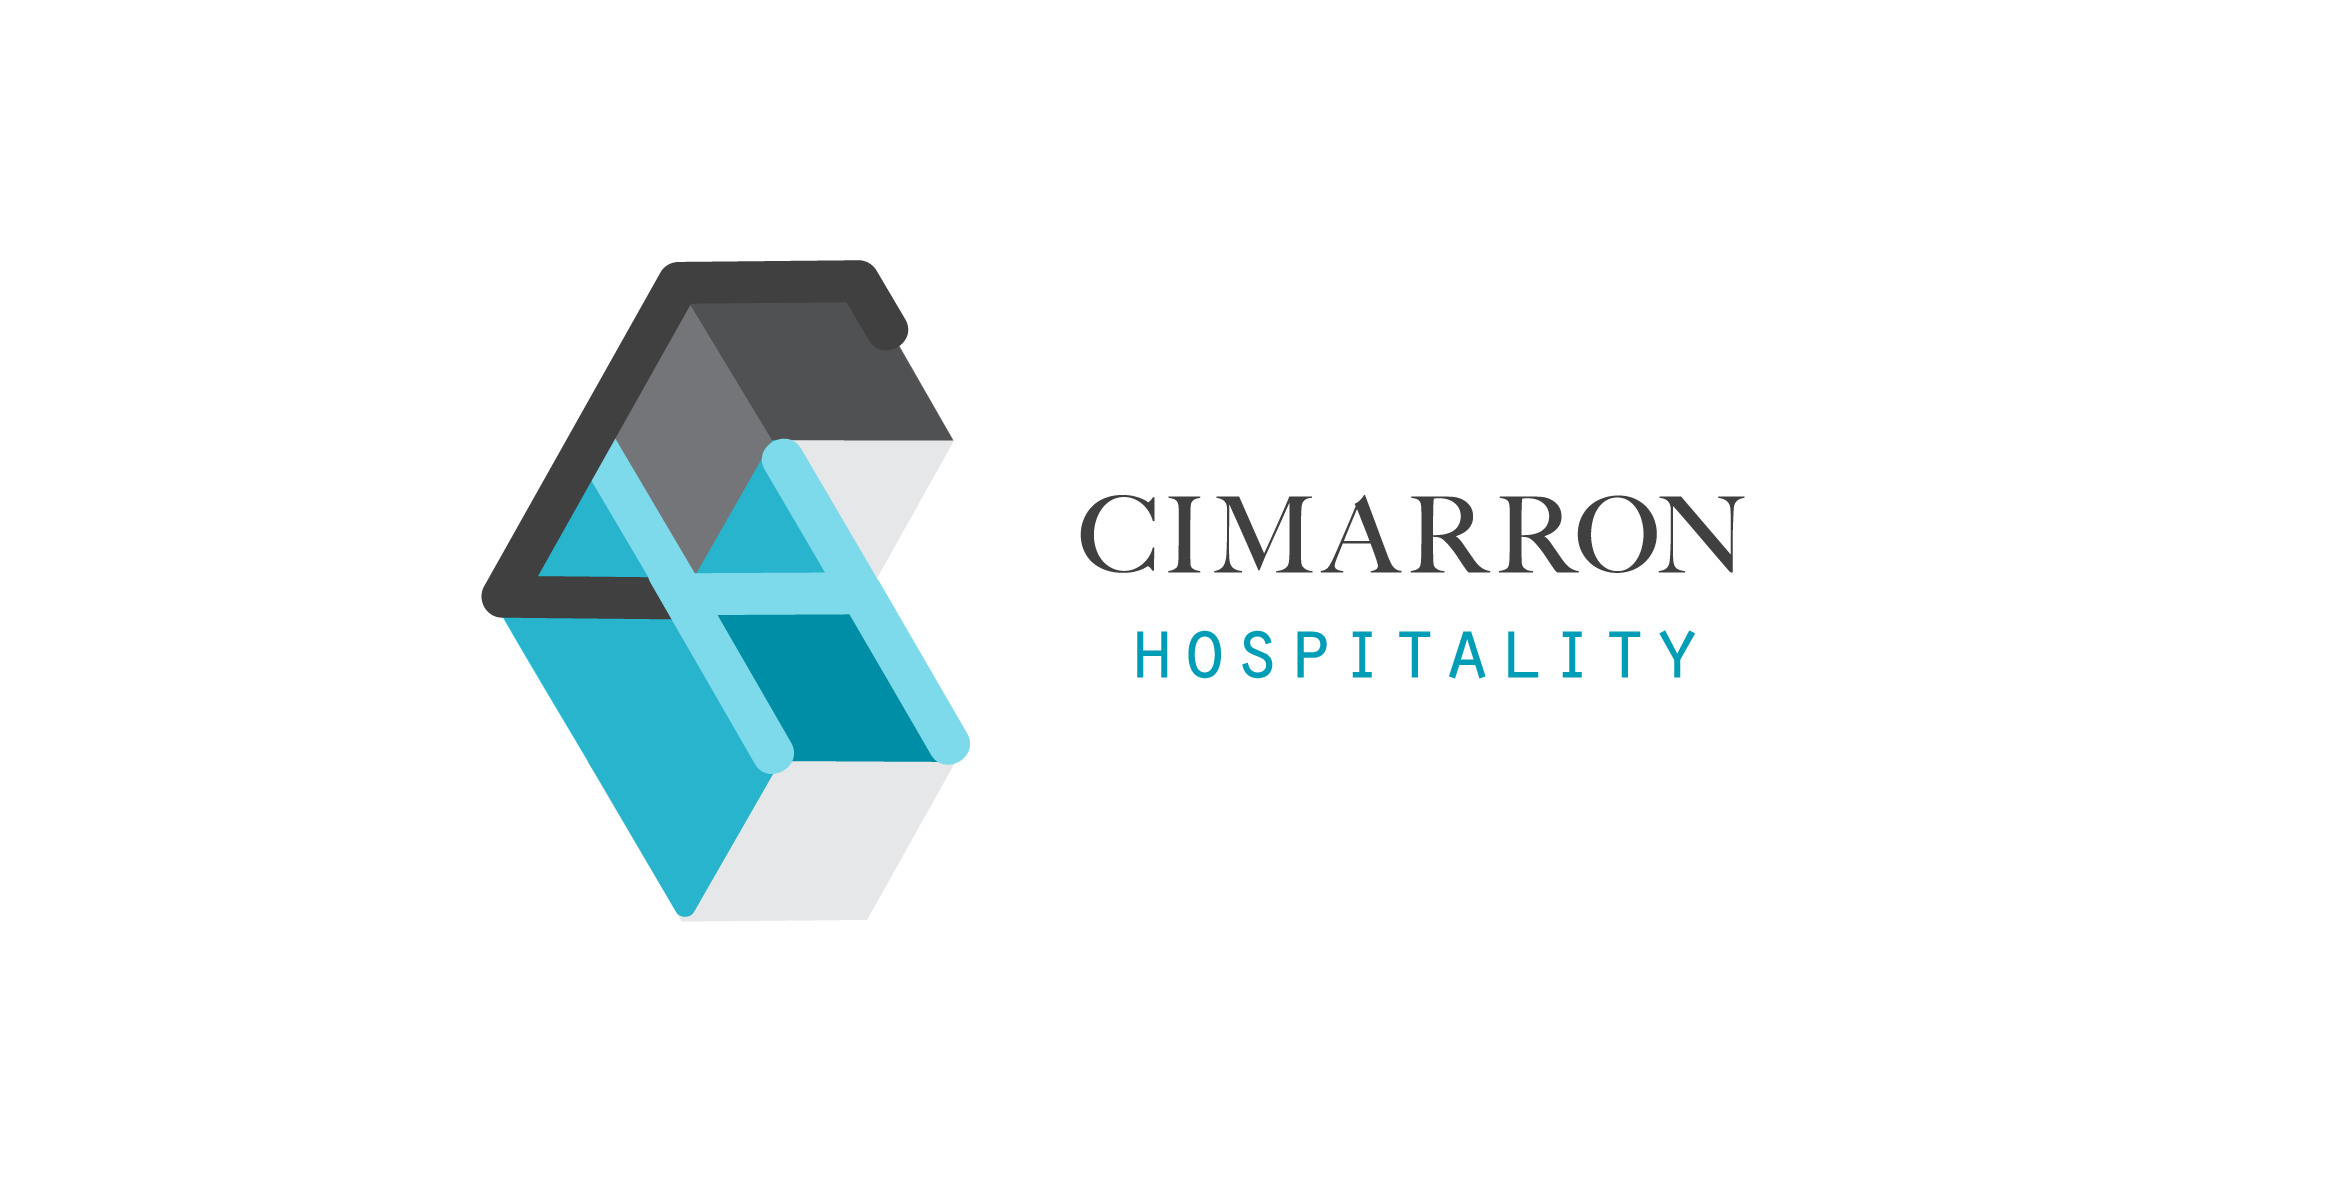 Pearl hospitality png. Cimarron newlogo lost creative